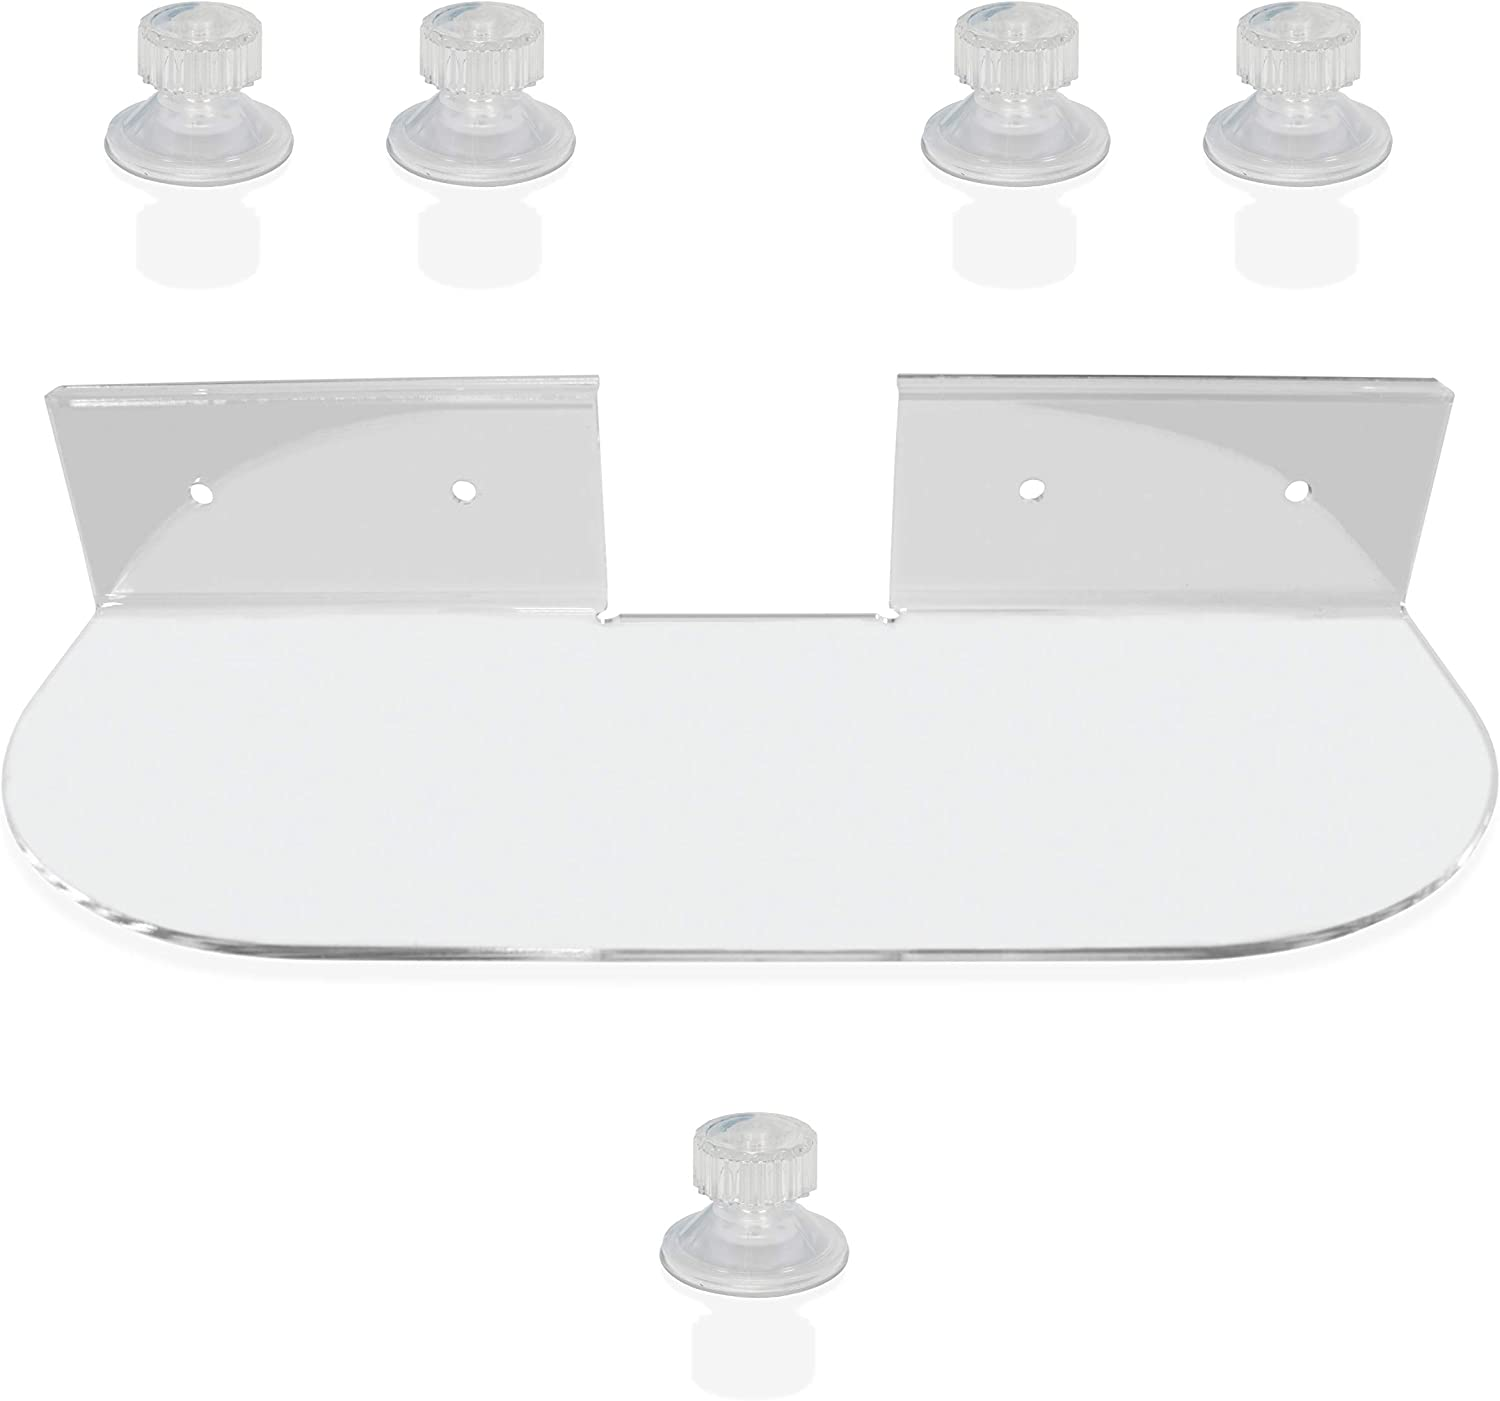 Brentmoor Acrylic Double Shelf - Clear Indoor Floating Garden Window Shelf for Microgreen Herbs Seed Starter Planter Pots - Complete with Additional Extra Strong Durable Suction Cup